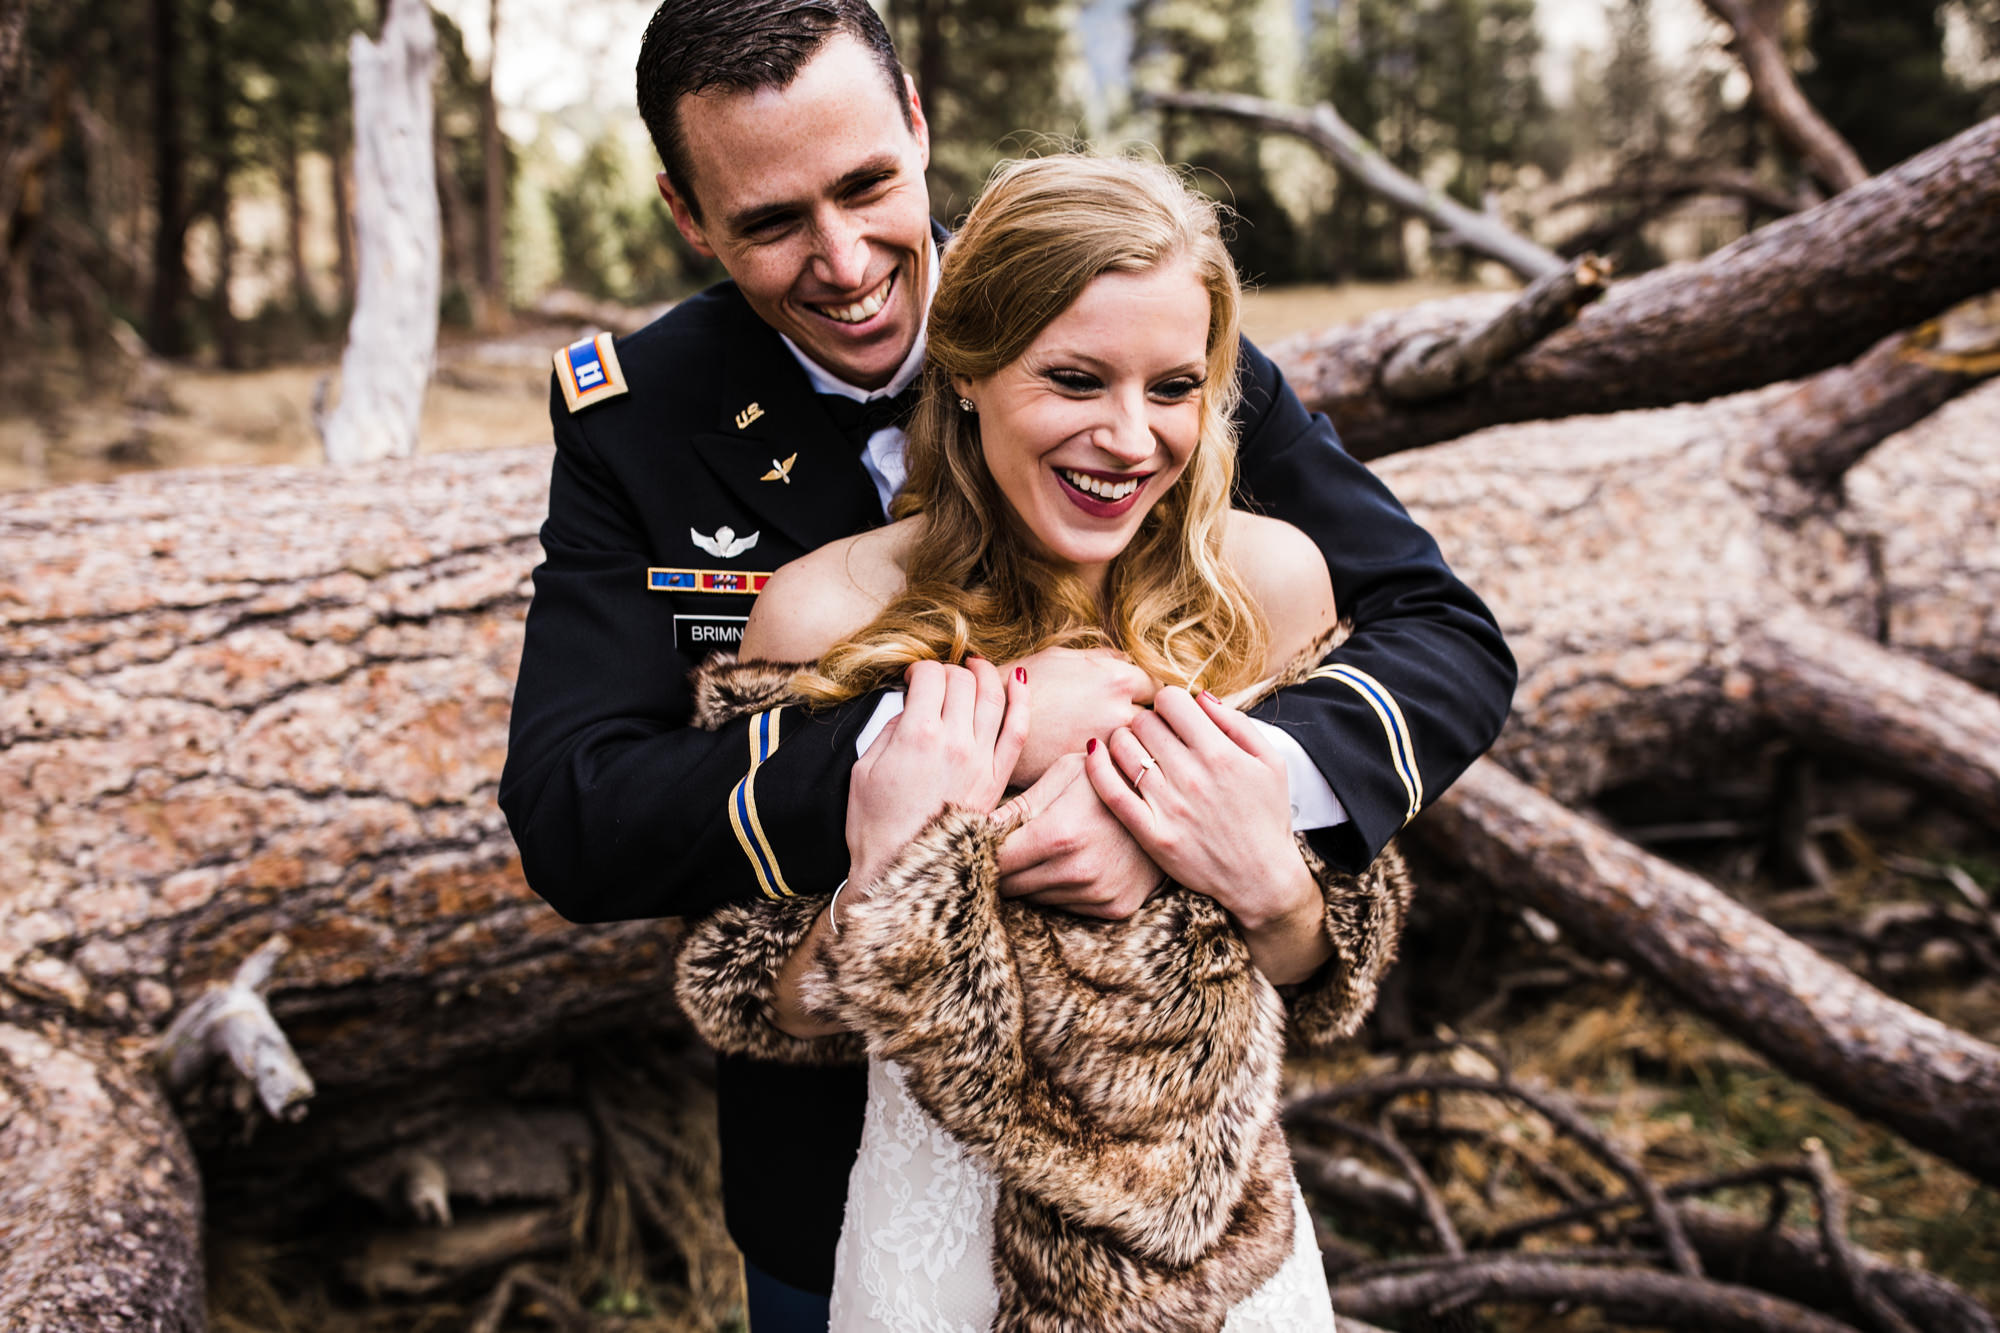 lindsey + stuart's intimate family-centered wedding in yosemite | national park elopement | destination elopement photographers | the hearnes adventure photography | www.thehearnes.com